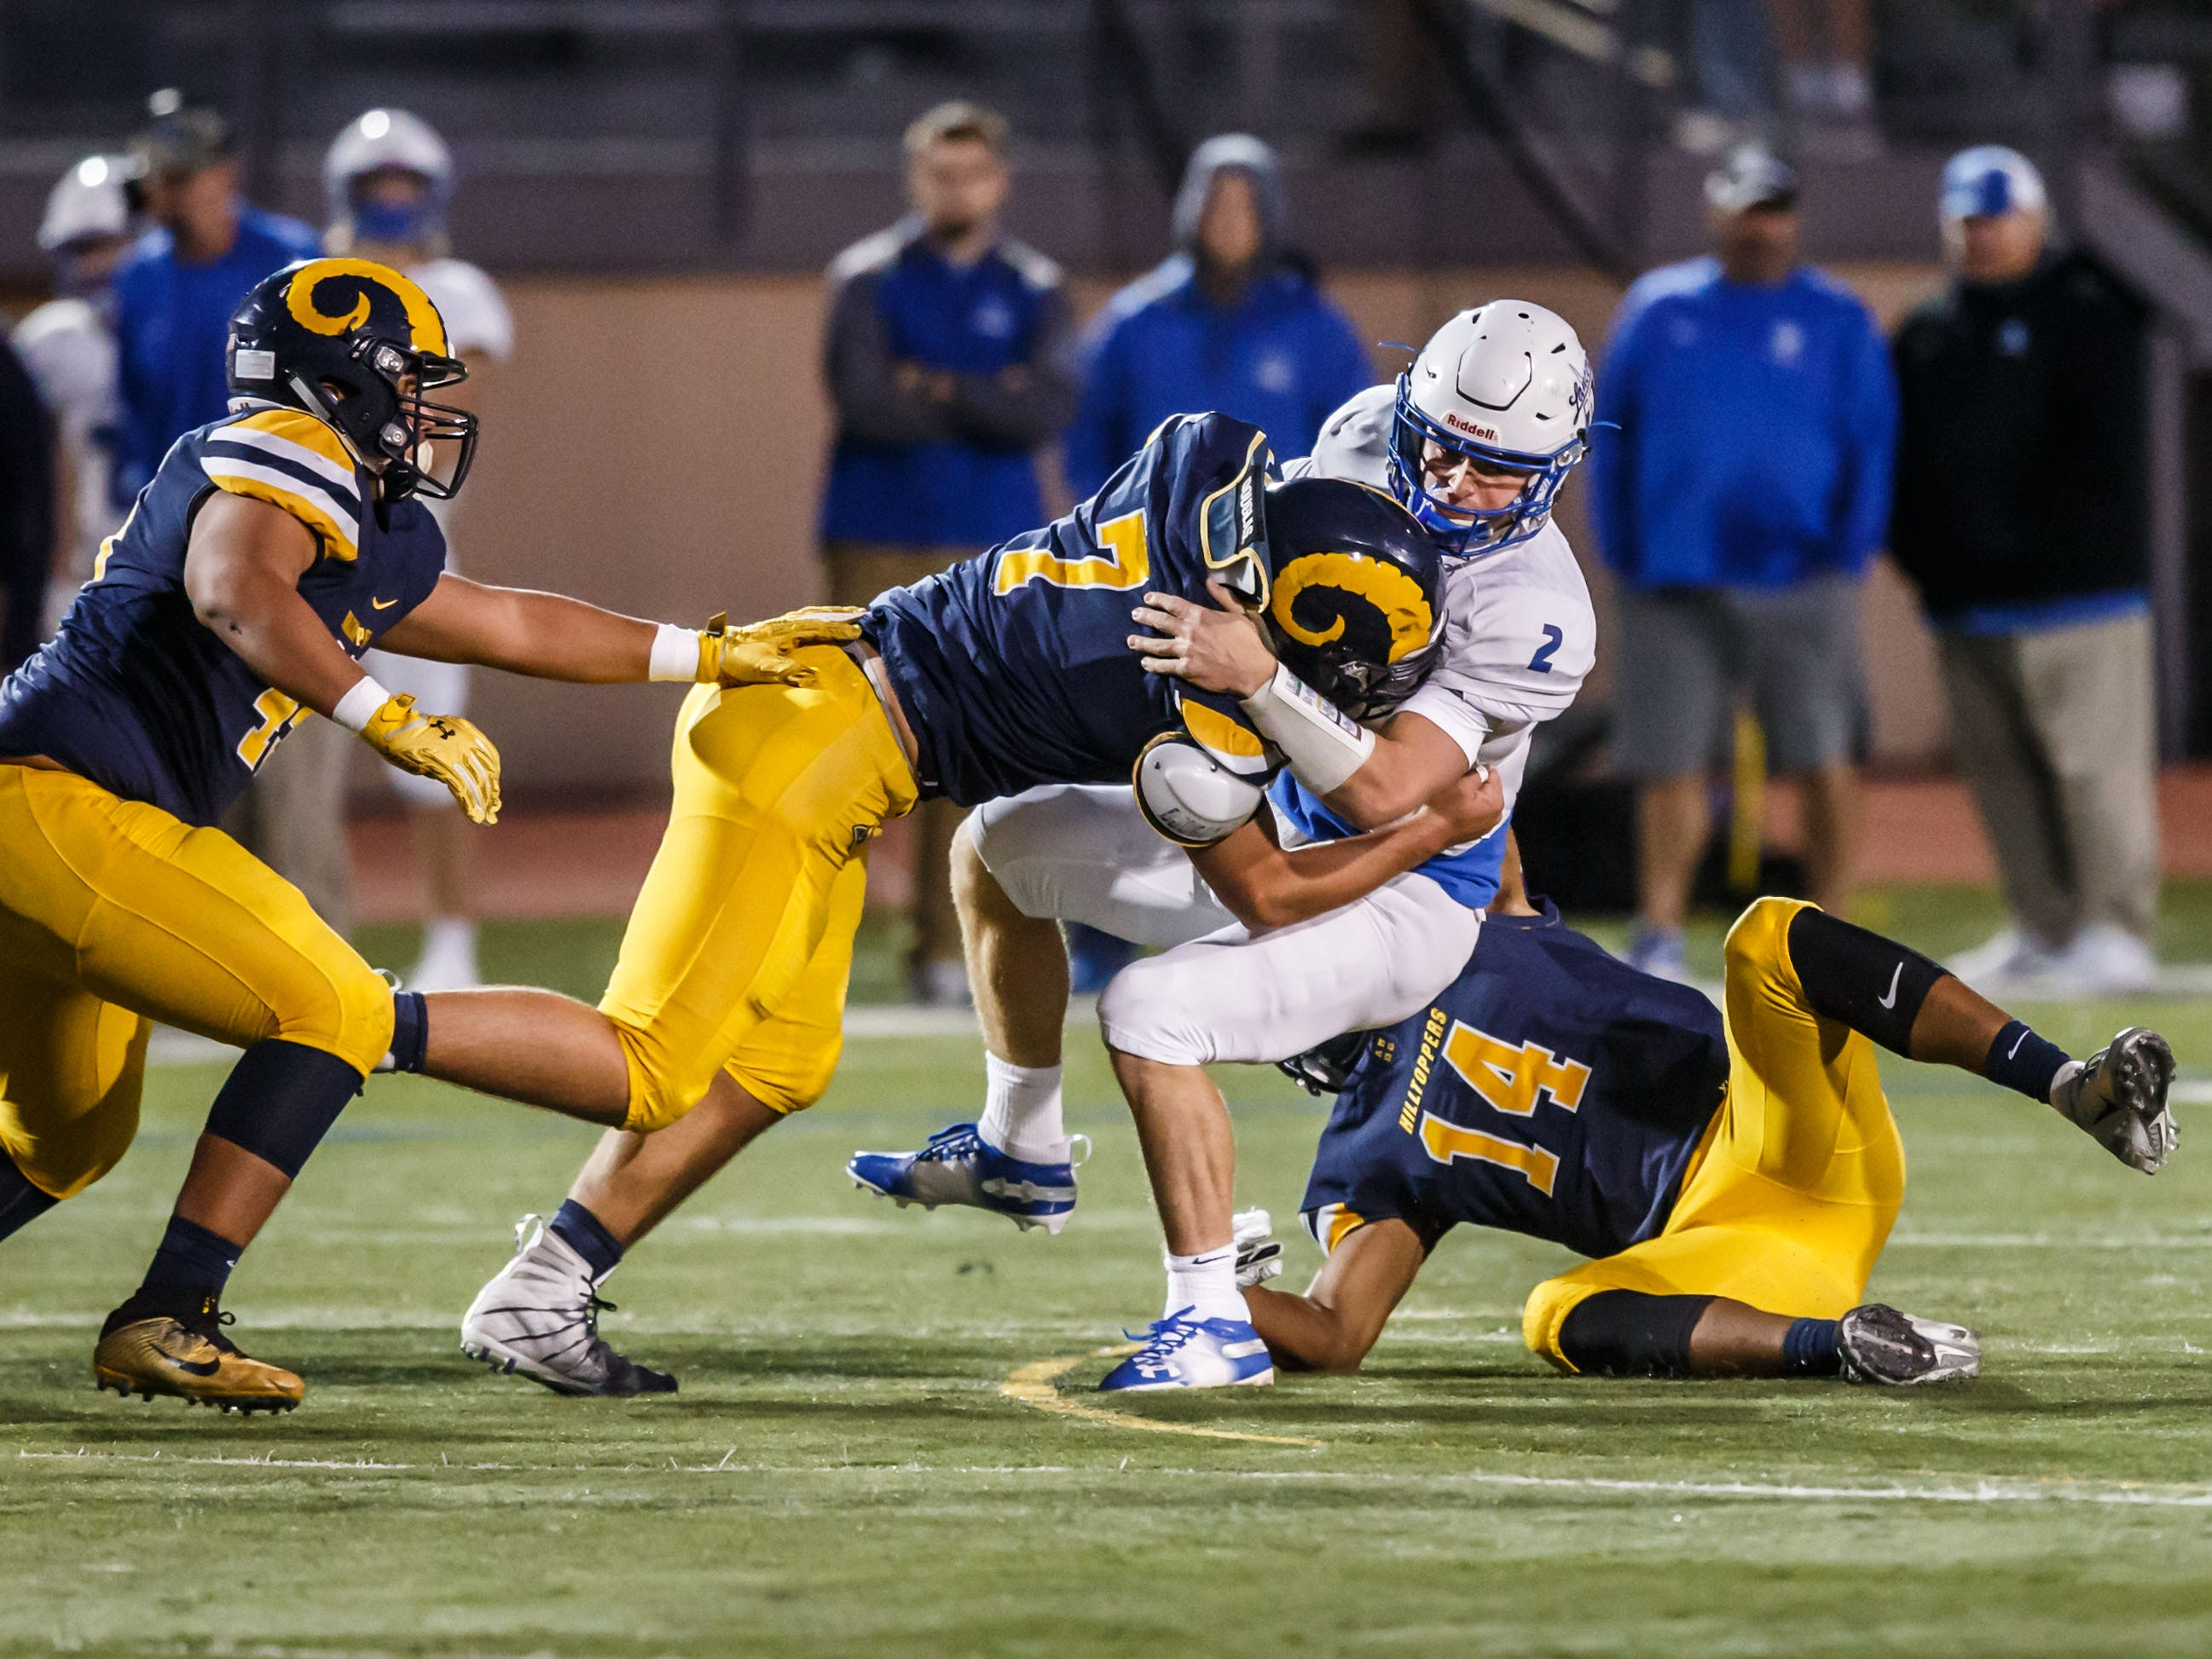 Marquette's John O'Brien (7) and Riley Nowakowski (14) catch Brookfield Central quarterback Drew Leszczynski (2) in the backfield during the game at home on Friday, Sept. 21, 2018.